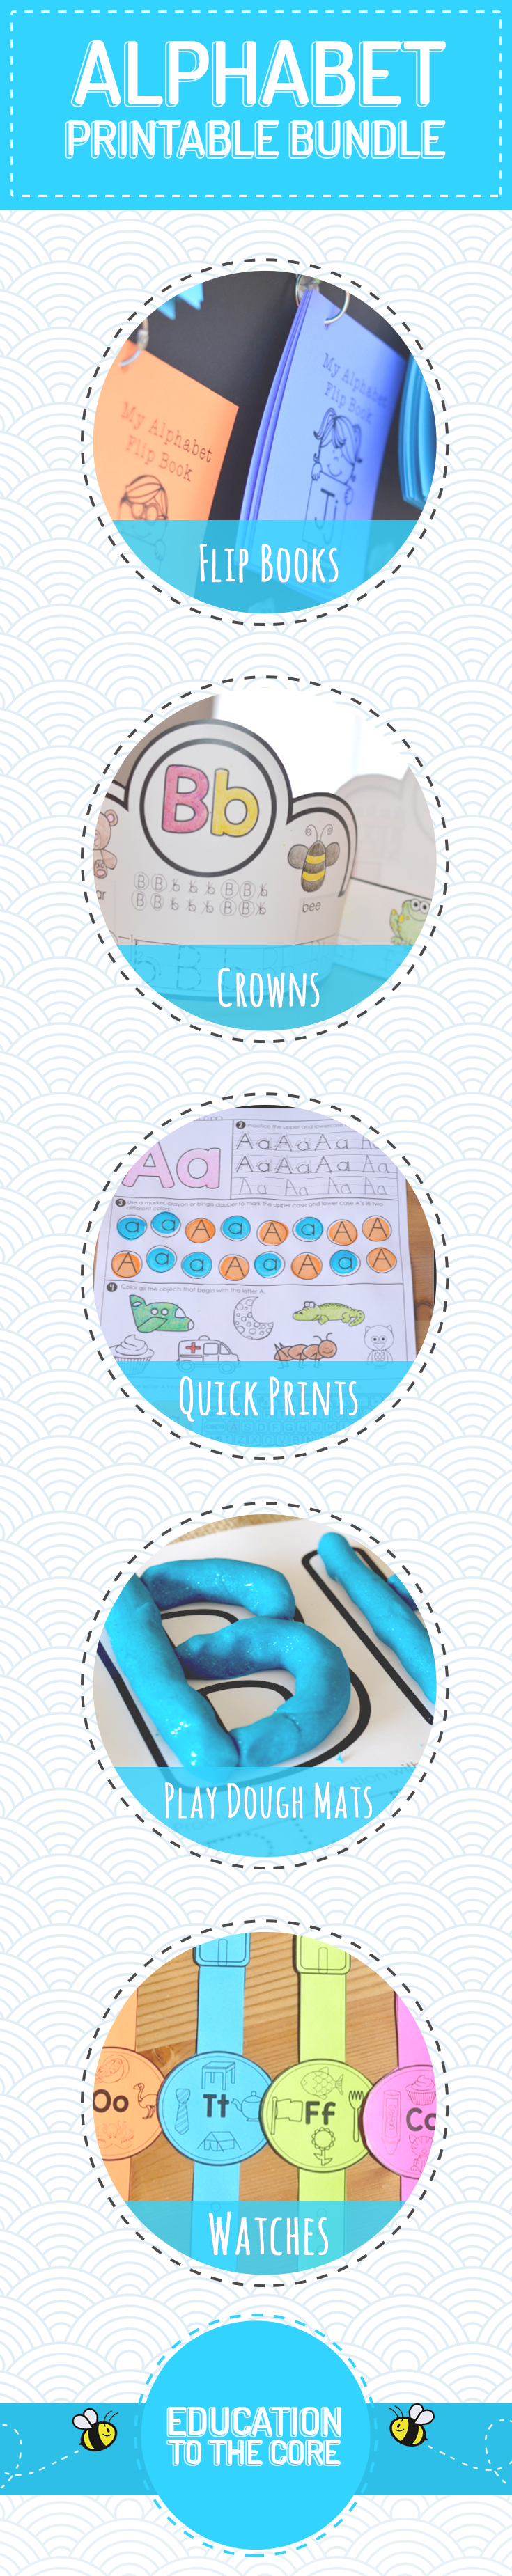 Alphabet Activities | Alphabet Printables Bundle | Letter Sounds ...